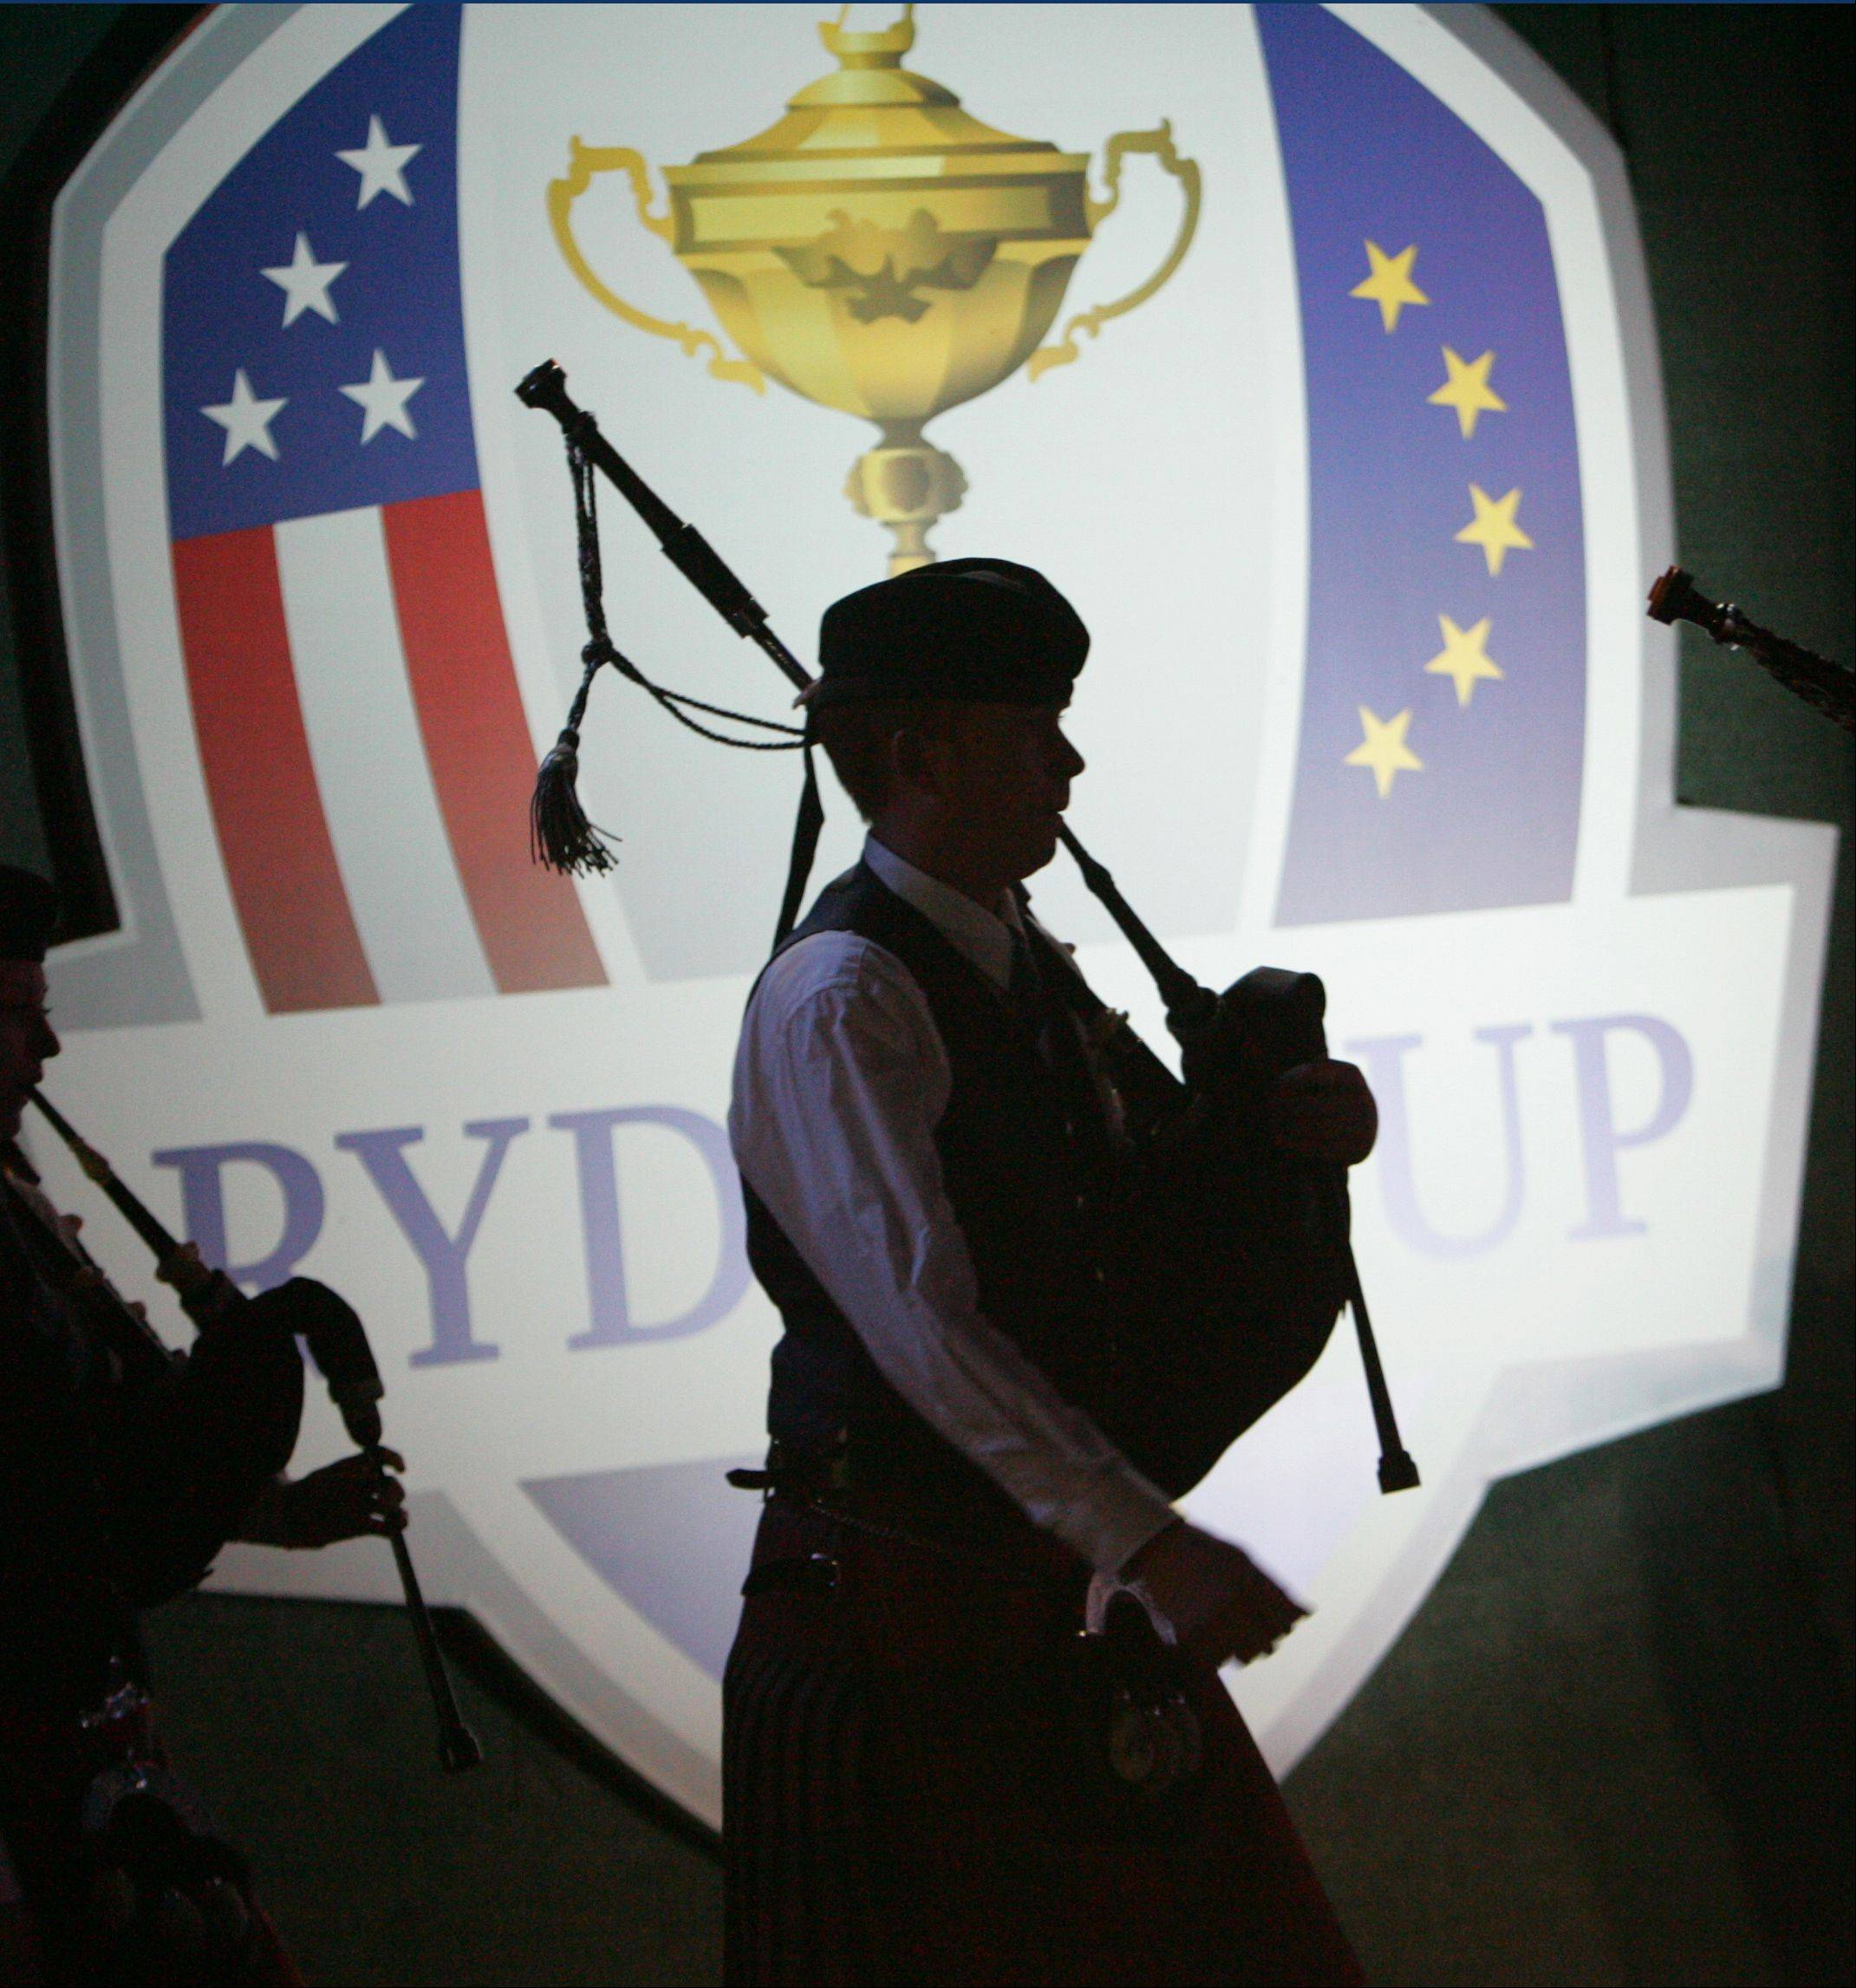 A bagpiper performs during the closing ceremonies of the Ryder Cup Sunday evening at Medinah Country Club